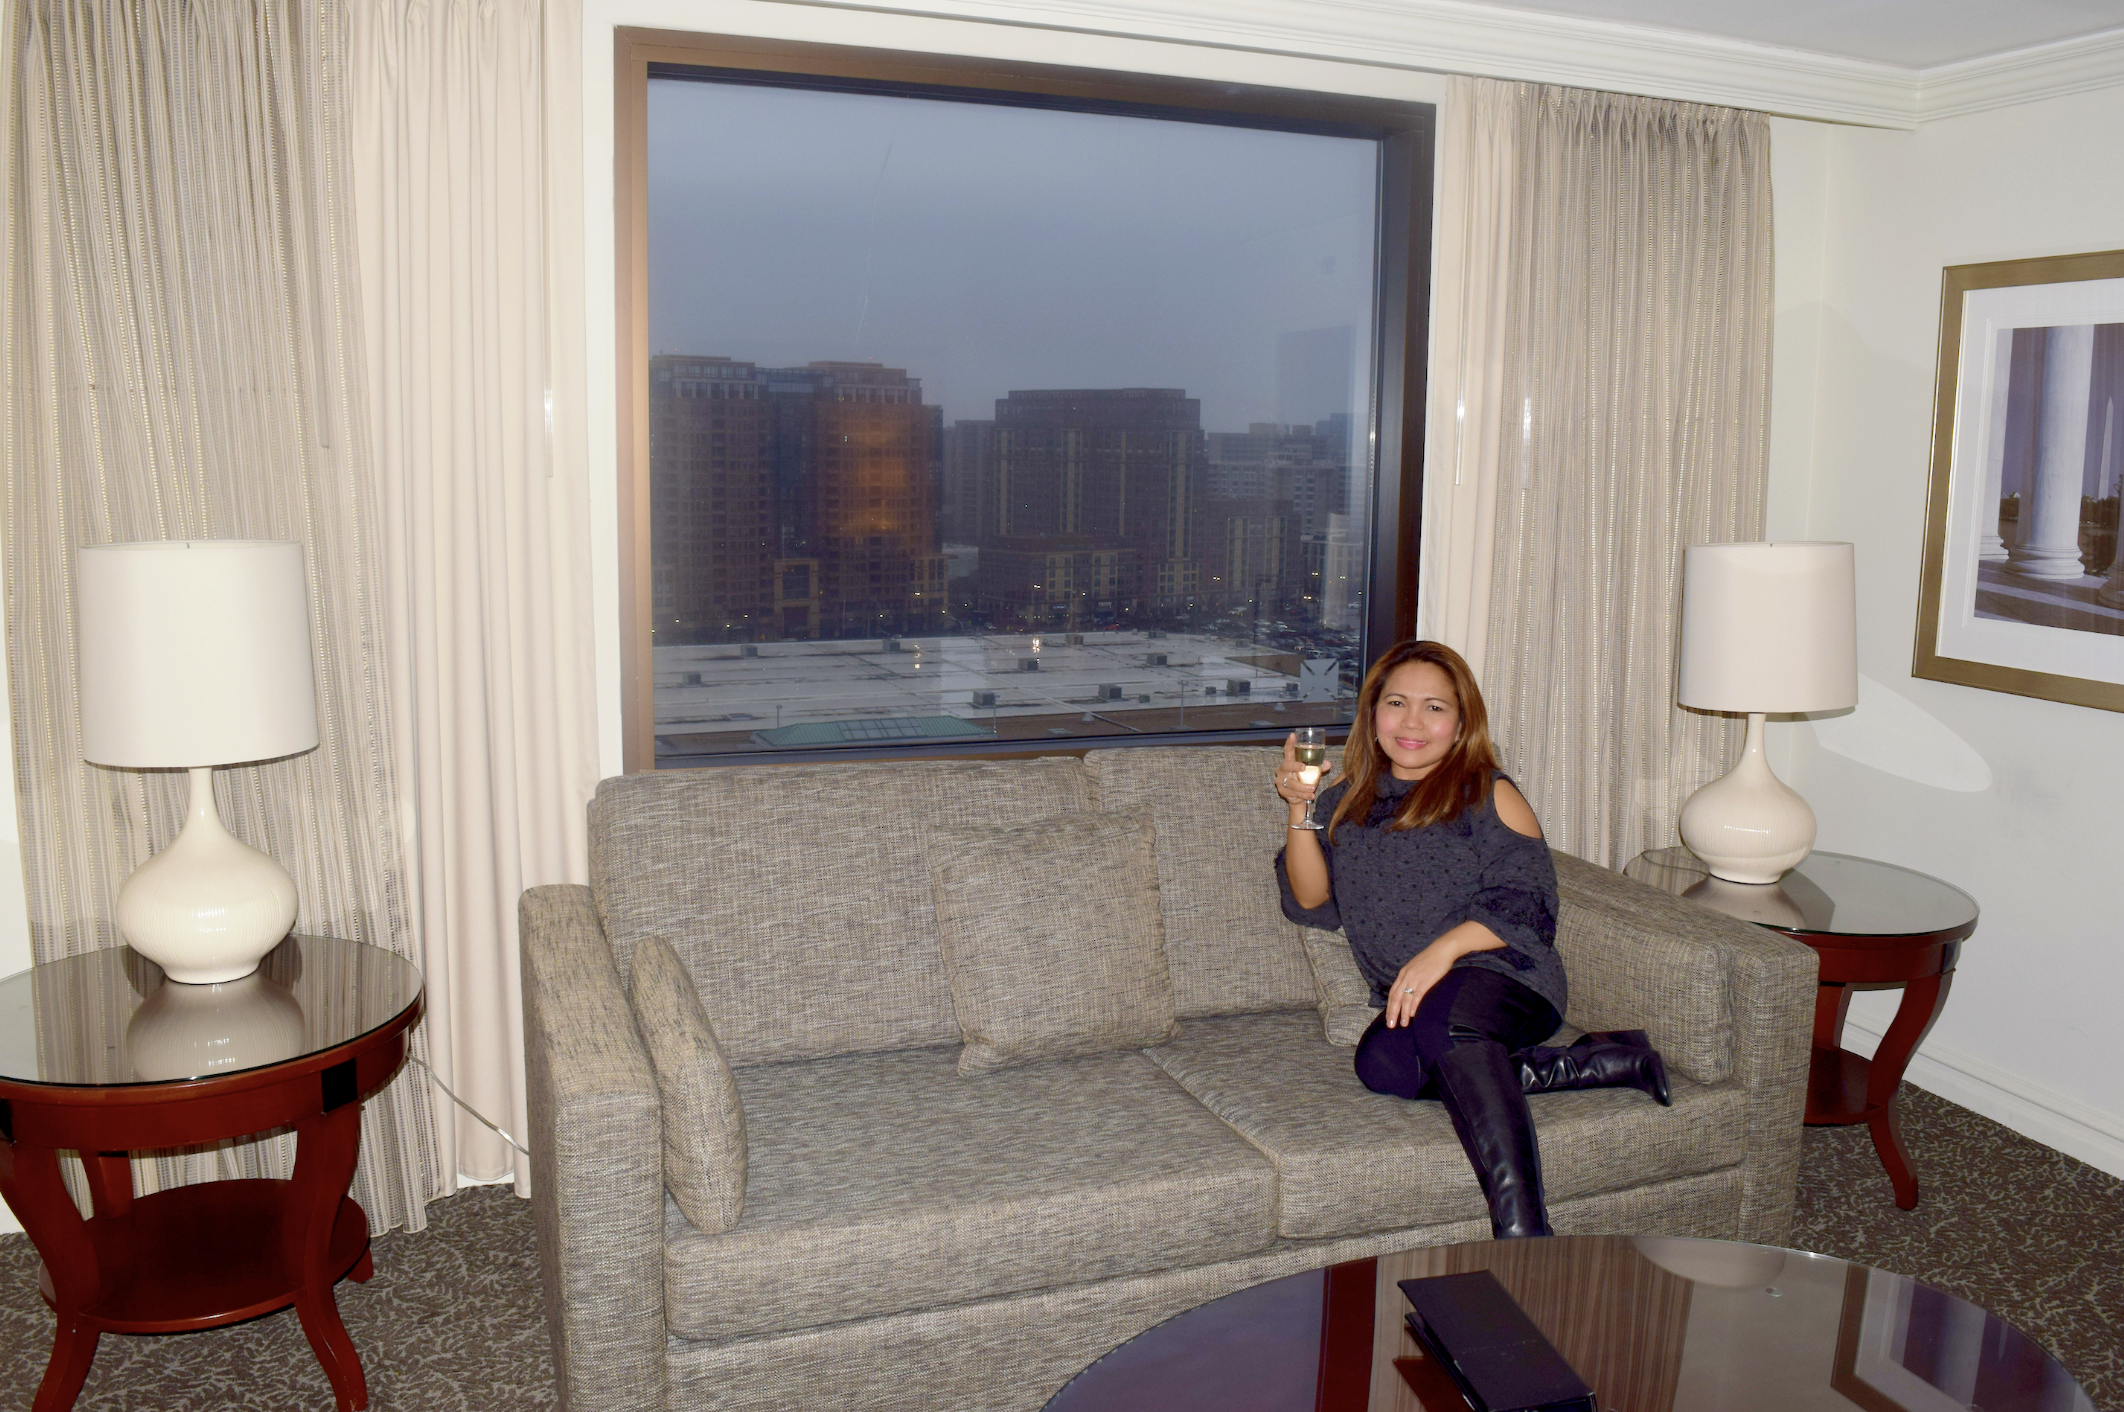 Check out my ultimate staycation experience at The Ritz-Carlton hotel in Pentagon City!